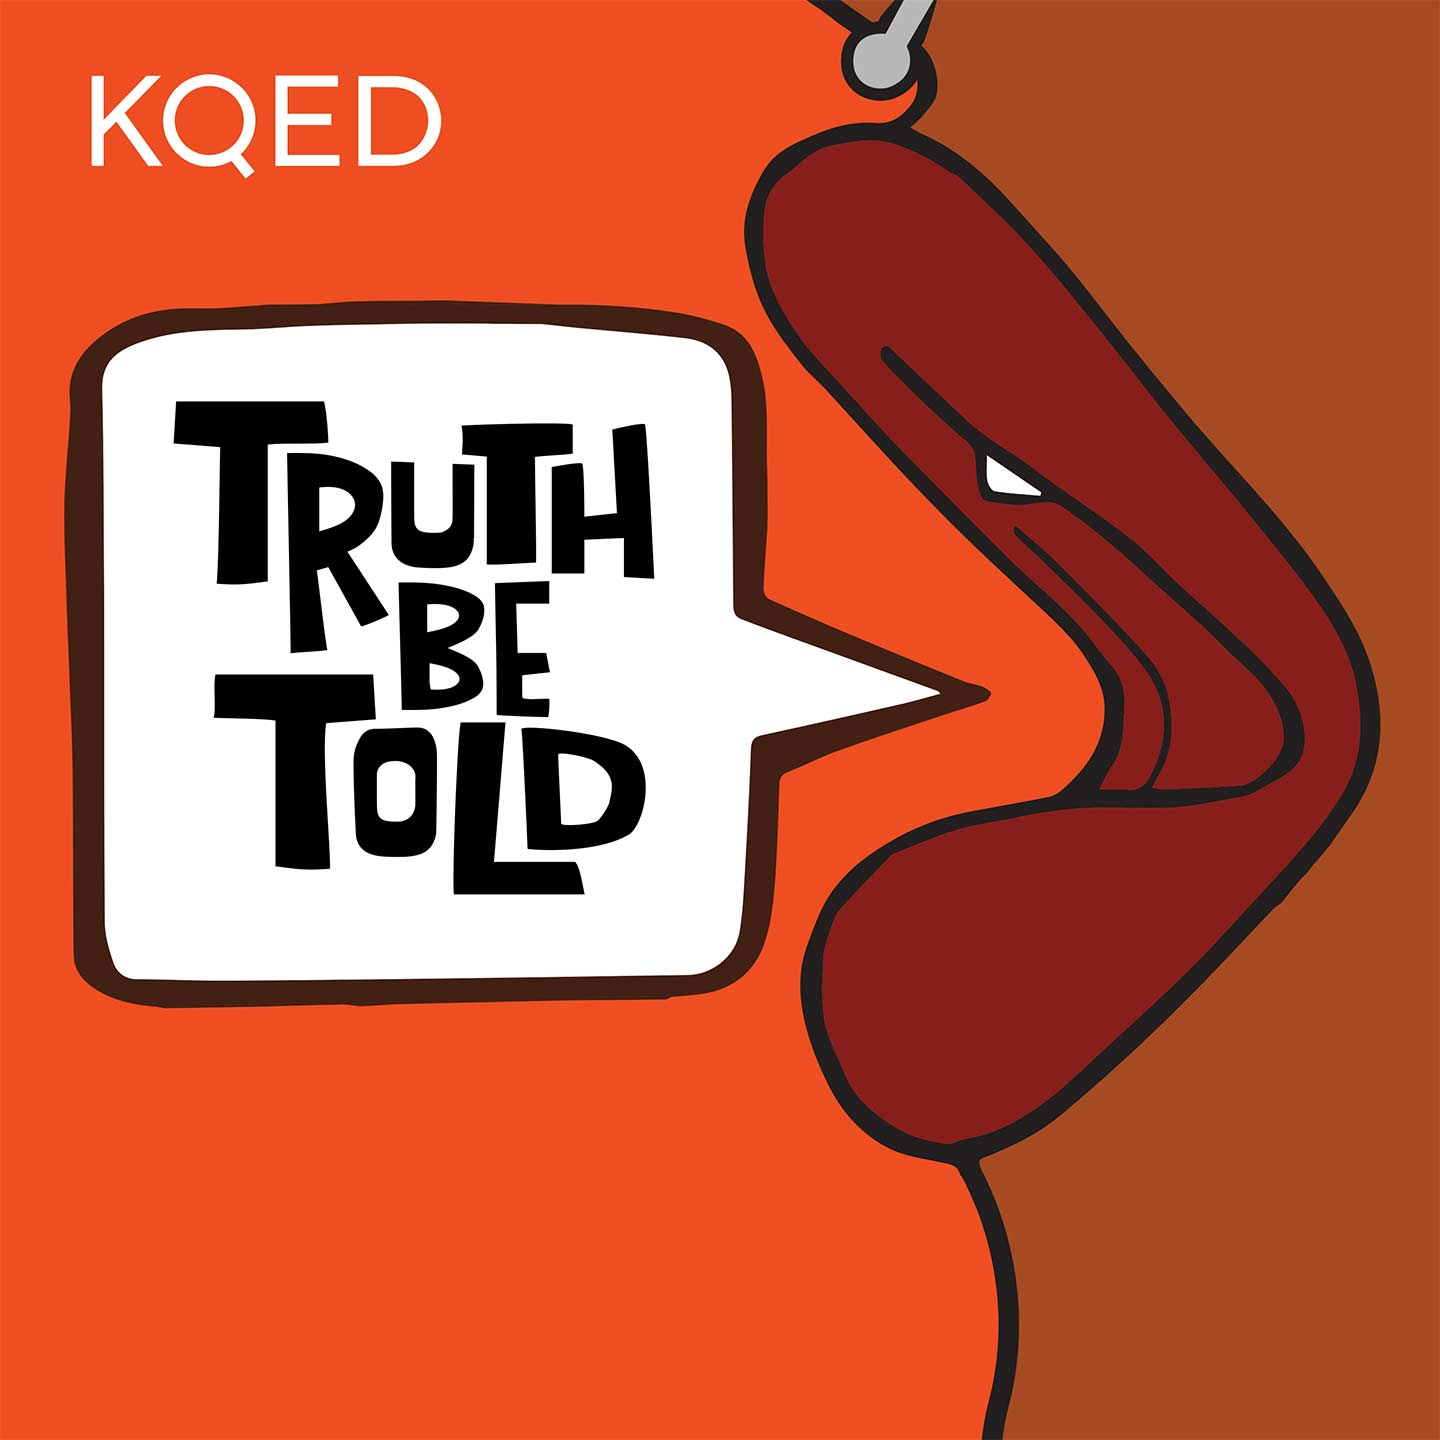 """The logo for the podcast Truth Be Told features an orange background, the KQED logo in white in the top left corner, and a drawing of a mouth and part of a septum piercing. The mouth is open and has dark red lips, and a speech bubble is next to it that says """"Truth Be Told"""" in black, blocky capital letters."""